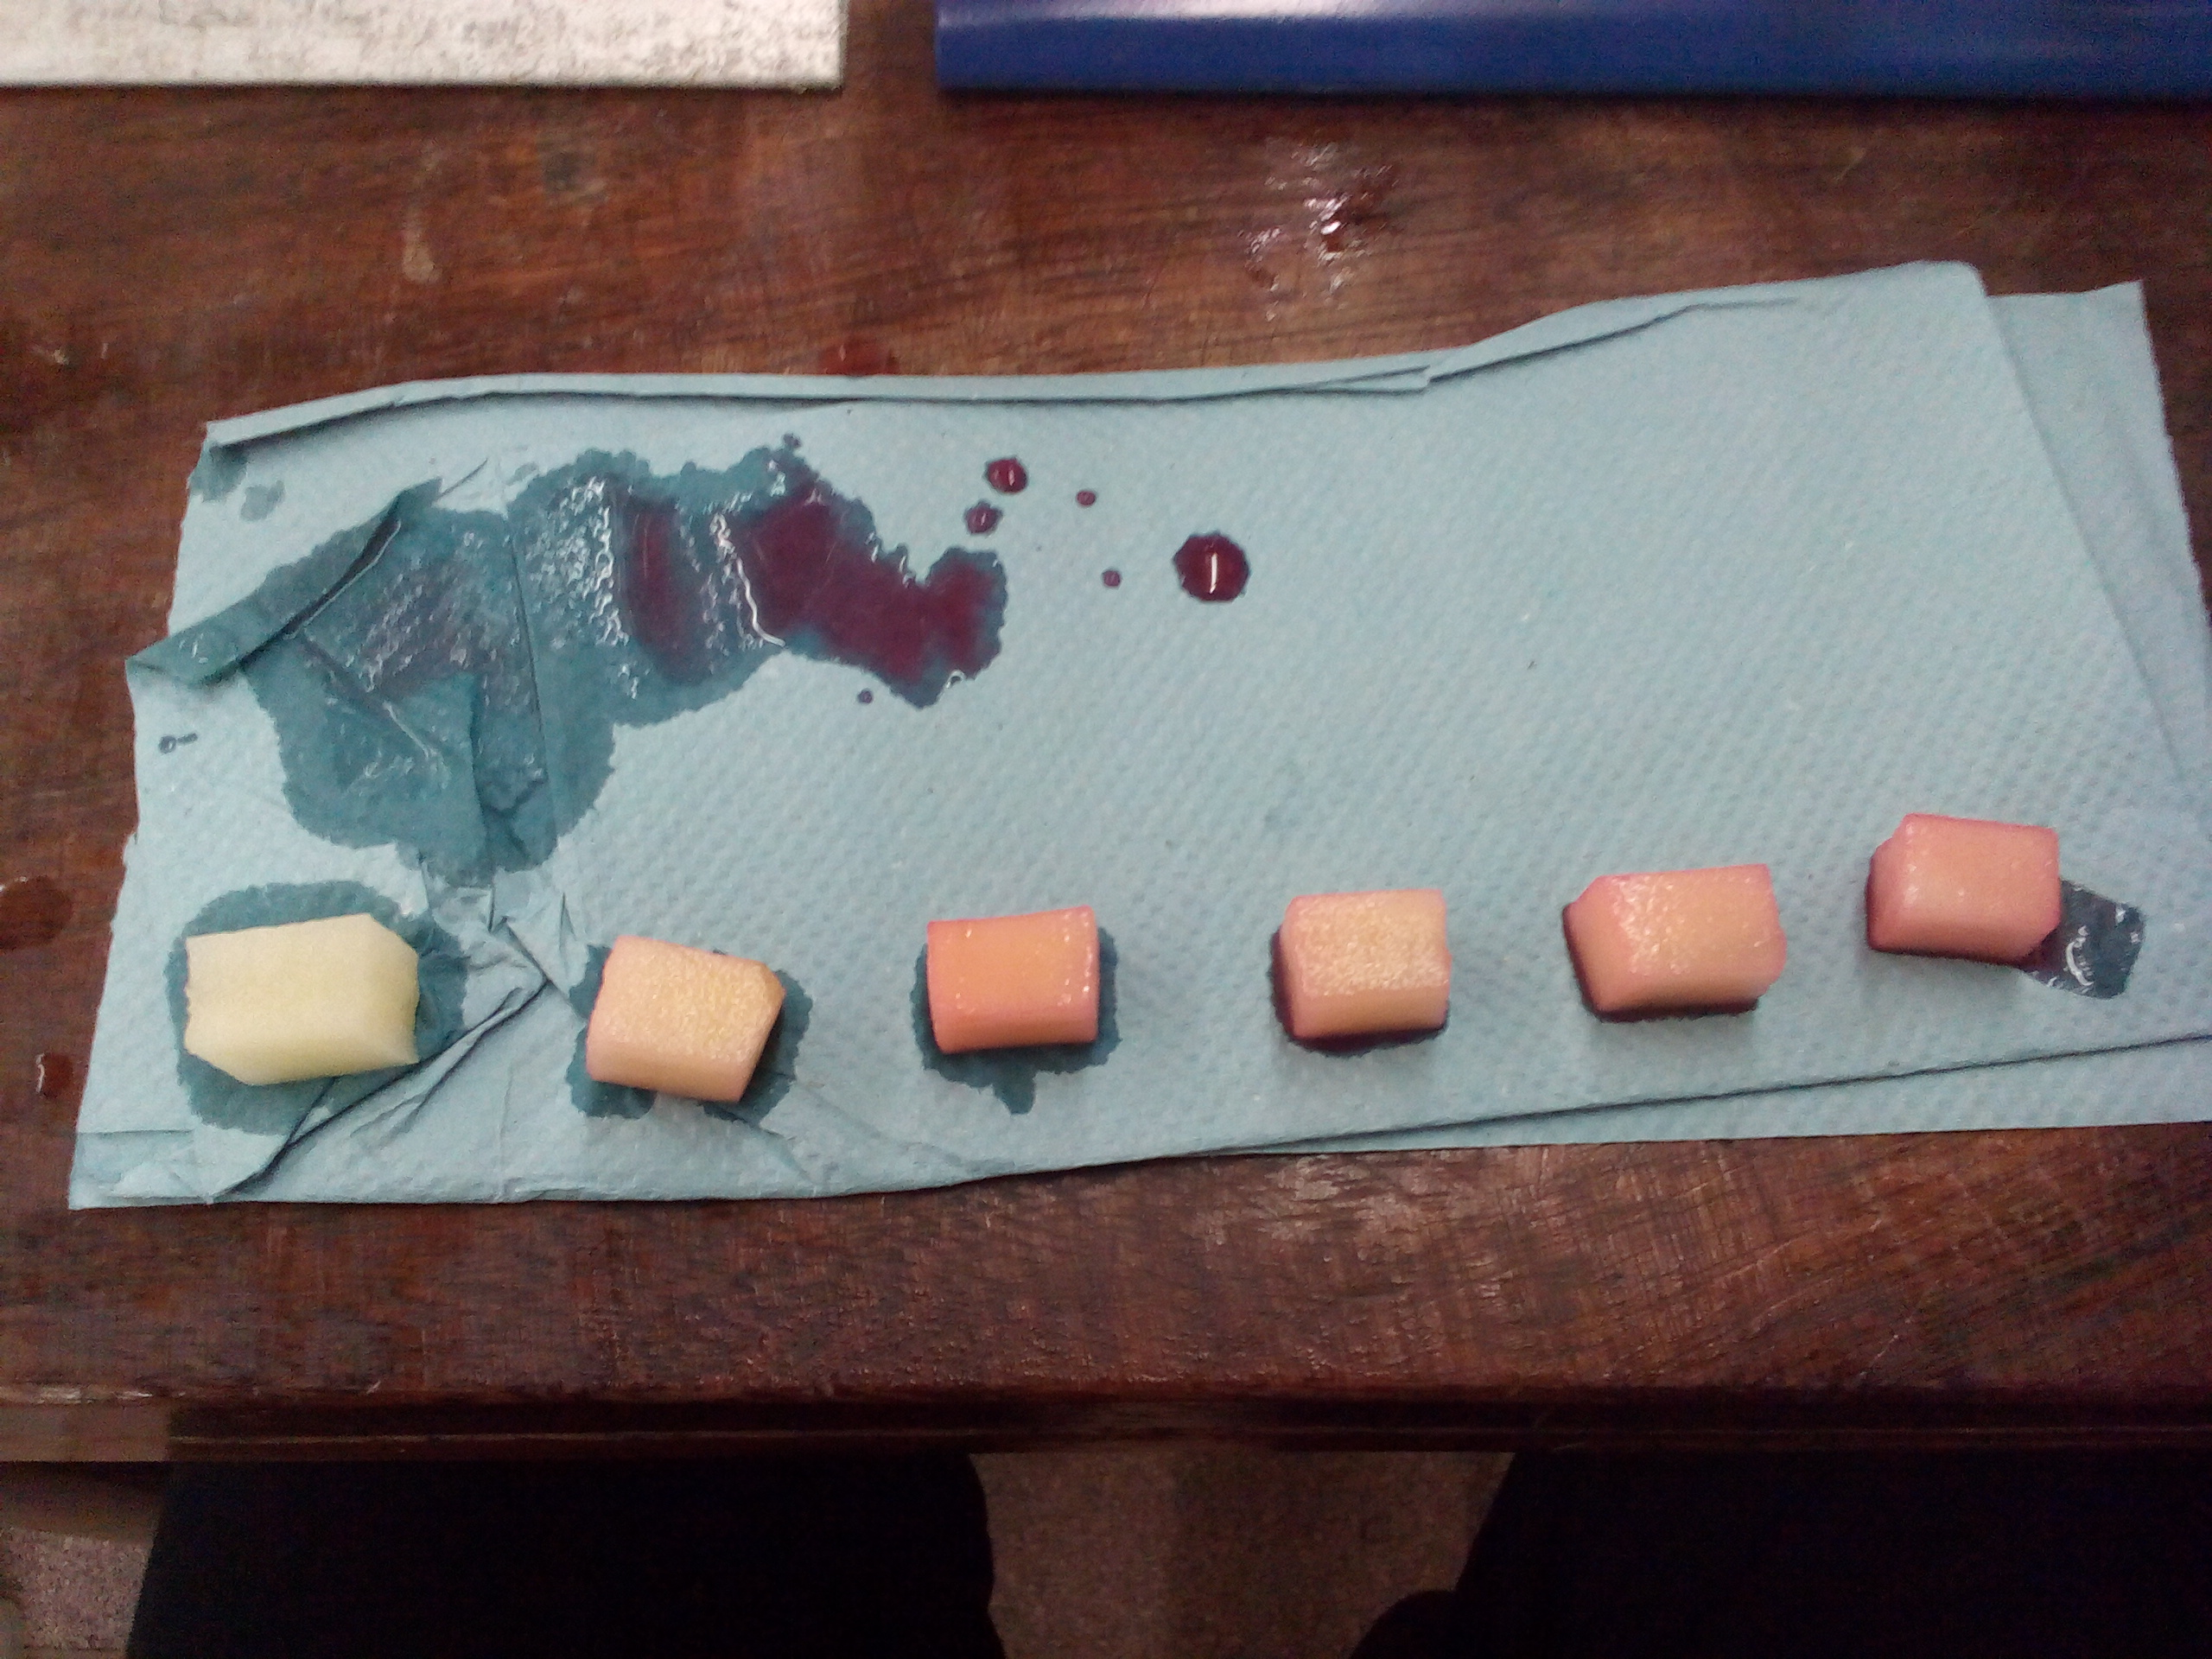 osmosis potato and blackcurrant squash Biology bio3t/p14/tn unit 3t as investigative skills assignment  the effect of concentration of blackcurrant squash on osmosis in potato cylinders  different concentrations of blackcurrant squash they will be provided with five concentrations of blackcurrant squash and potato cylinders the candidates will prepare the cylinders, weigh.